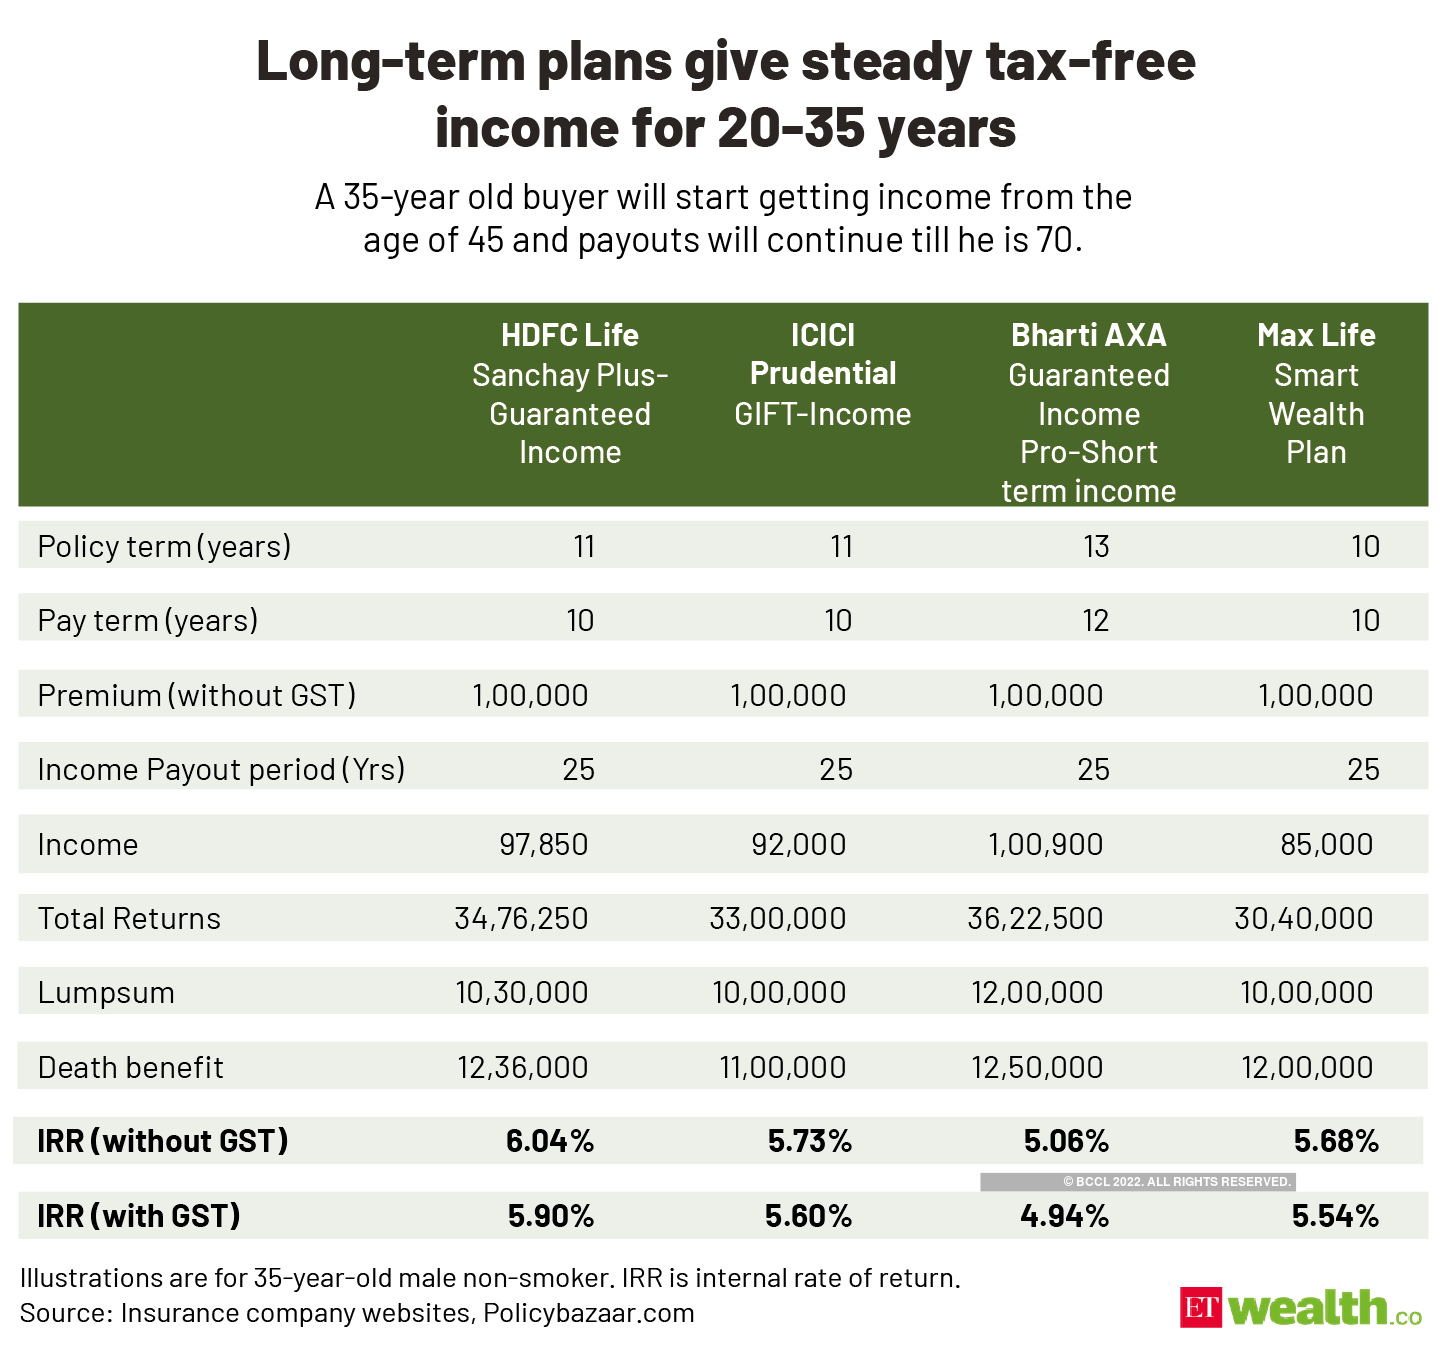 Long-term plans give steady tax-free _income for 20-35 years@2x